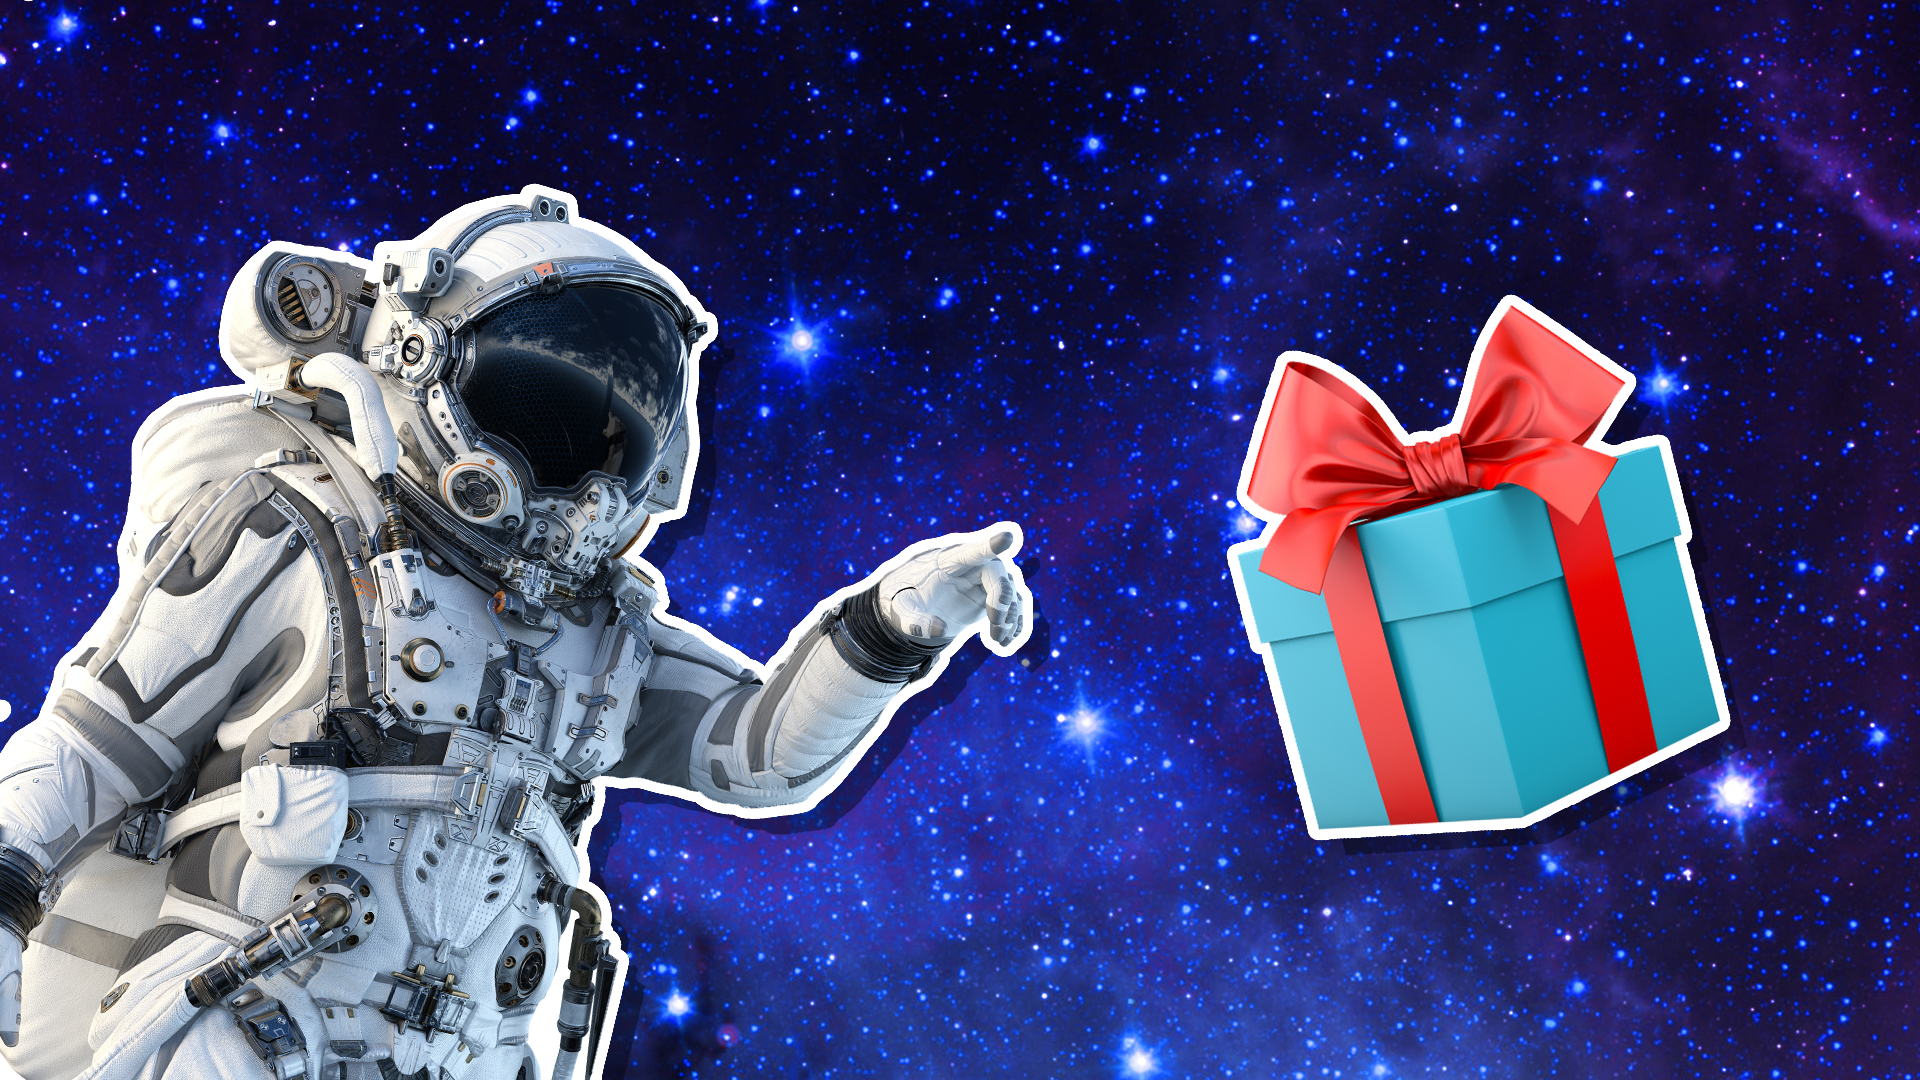 An astronaut in space with a floating gift